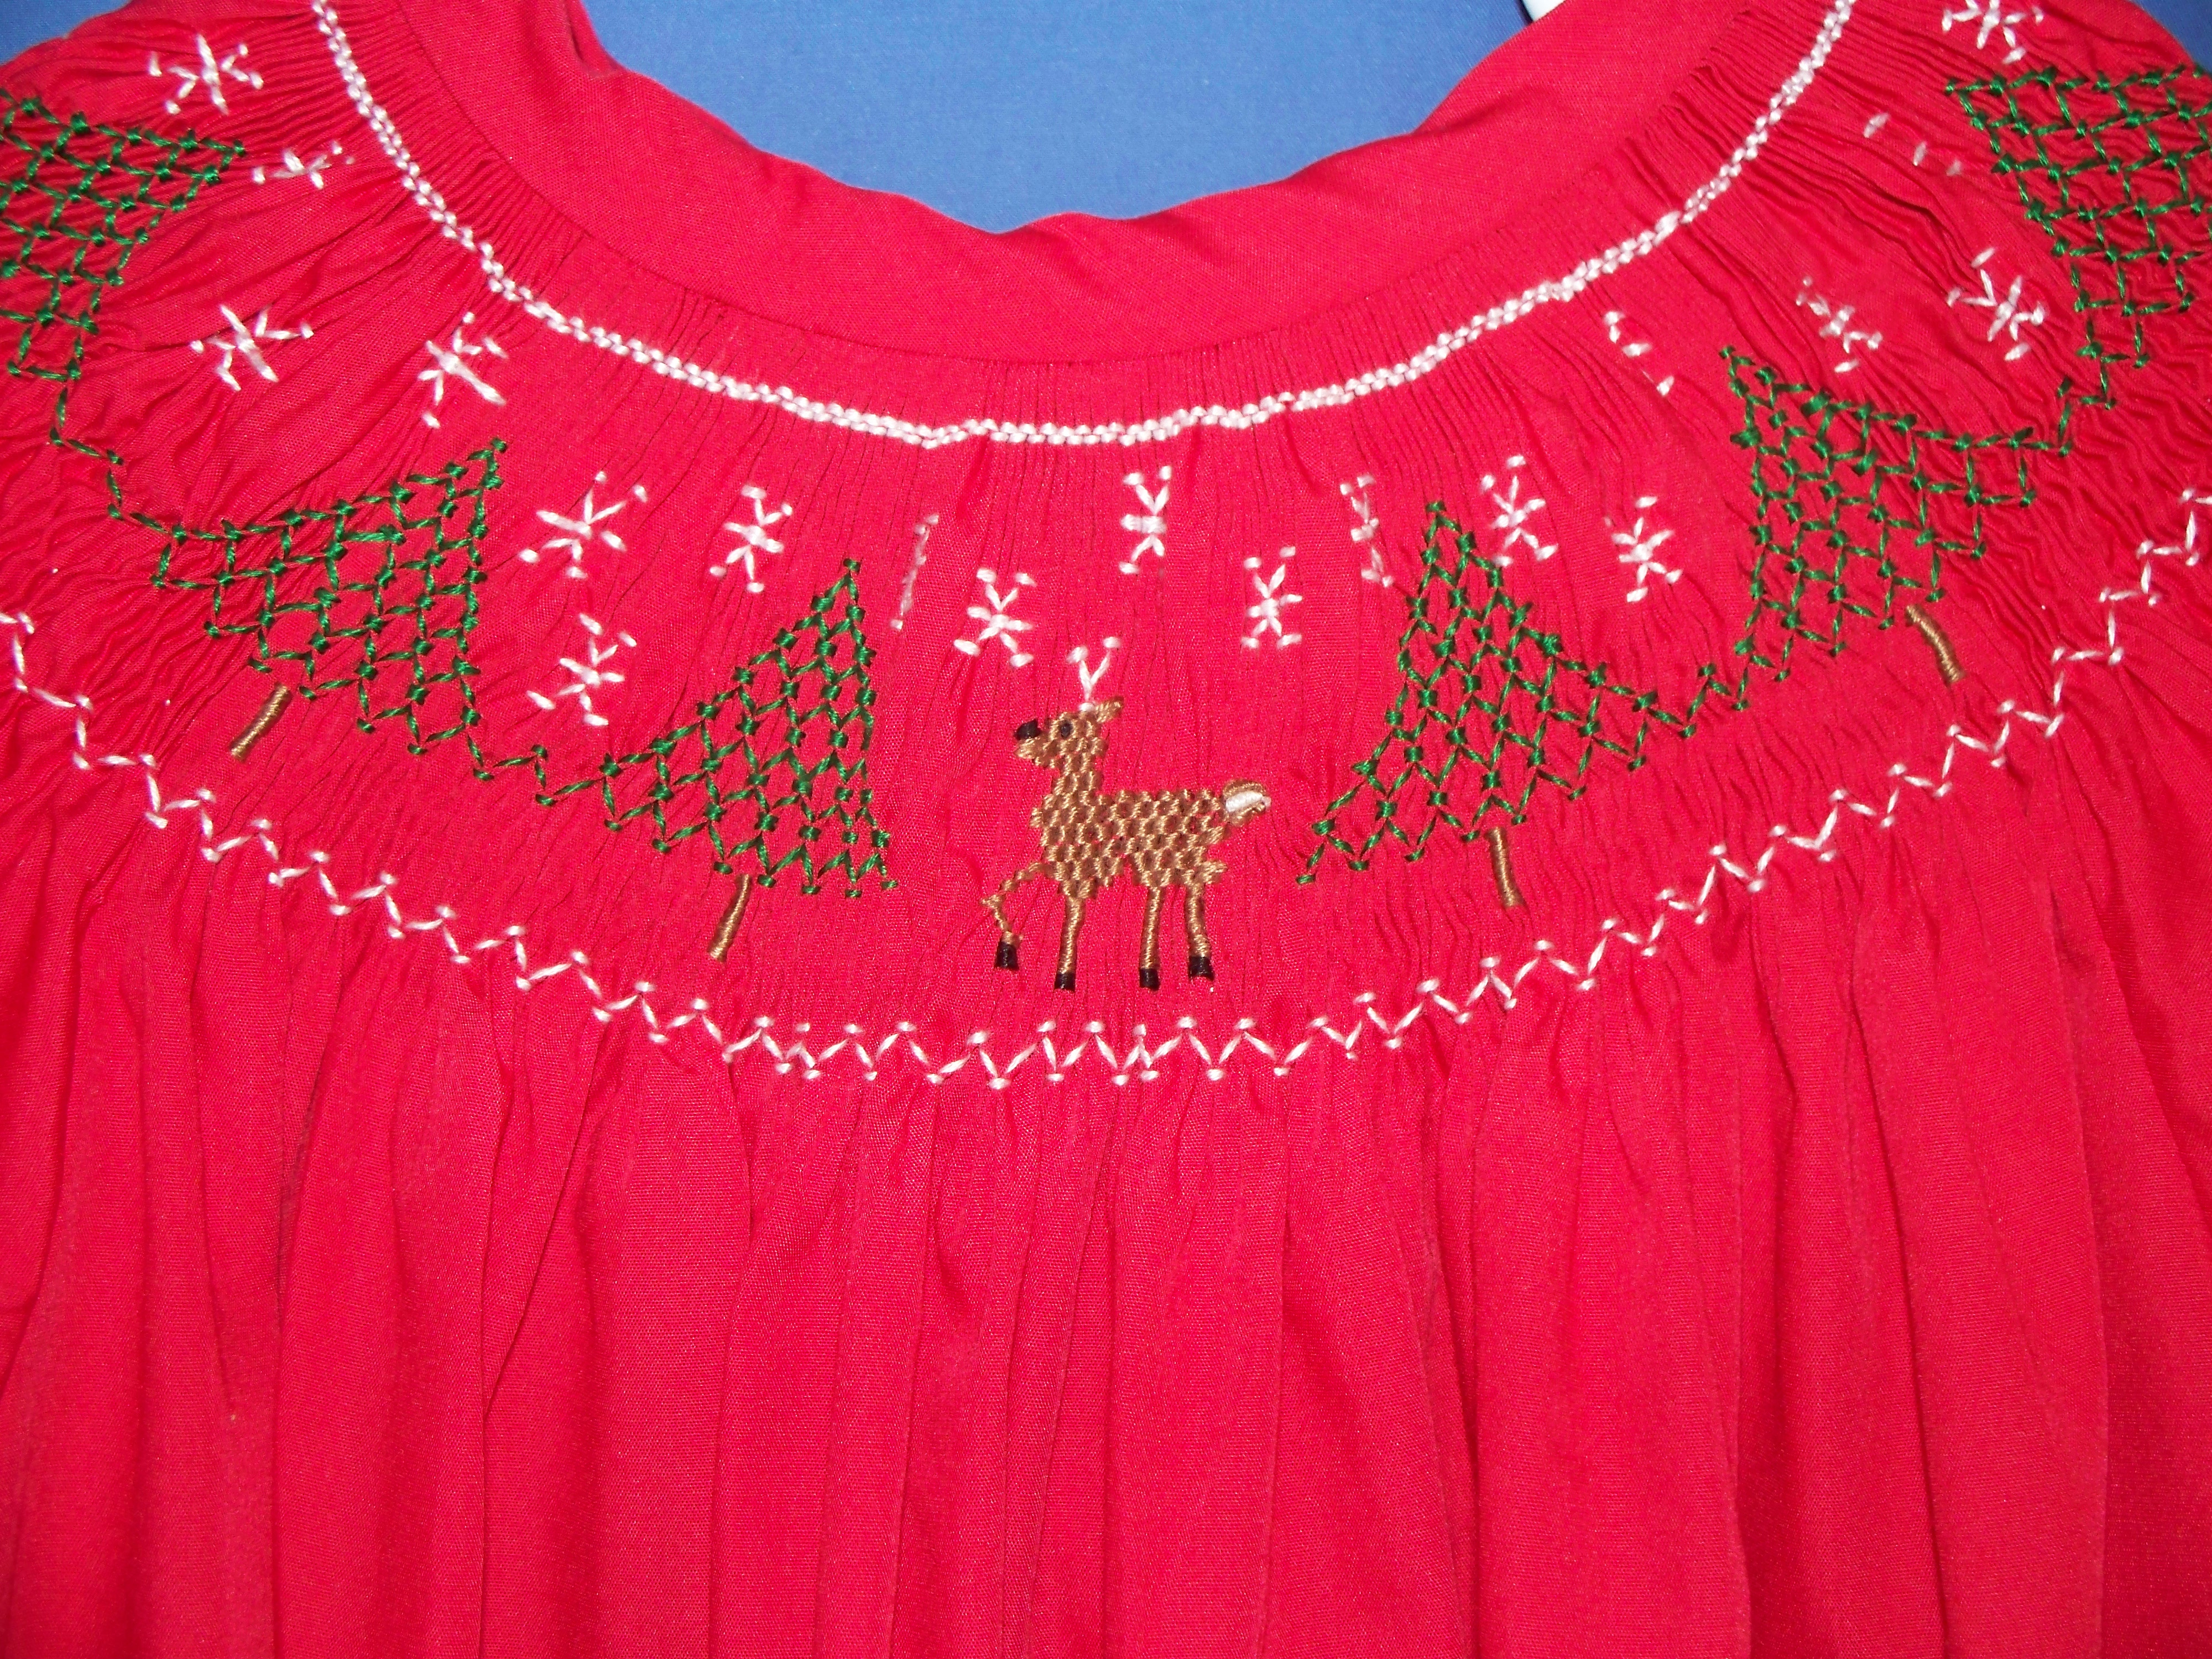 The Holiday Dress